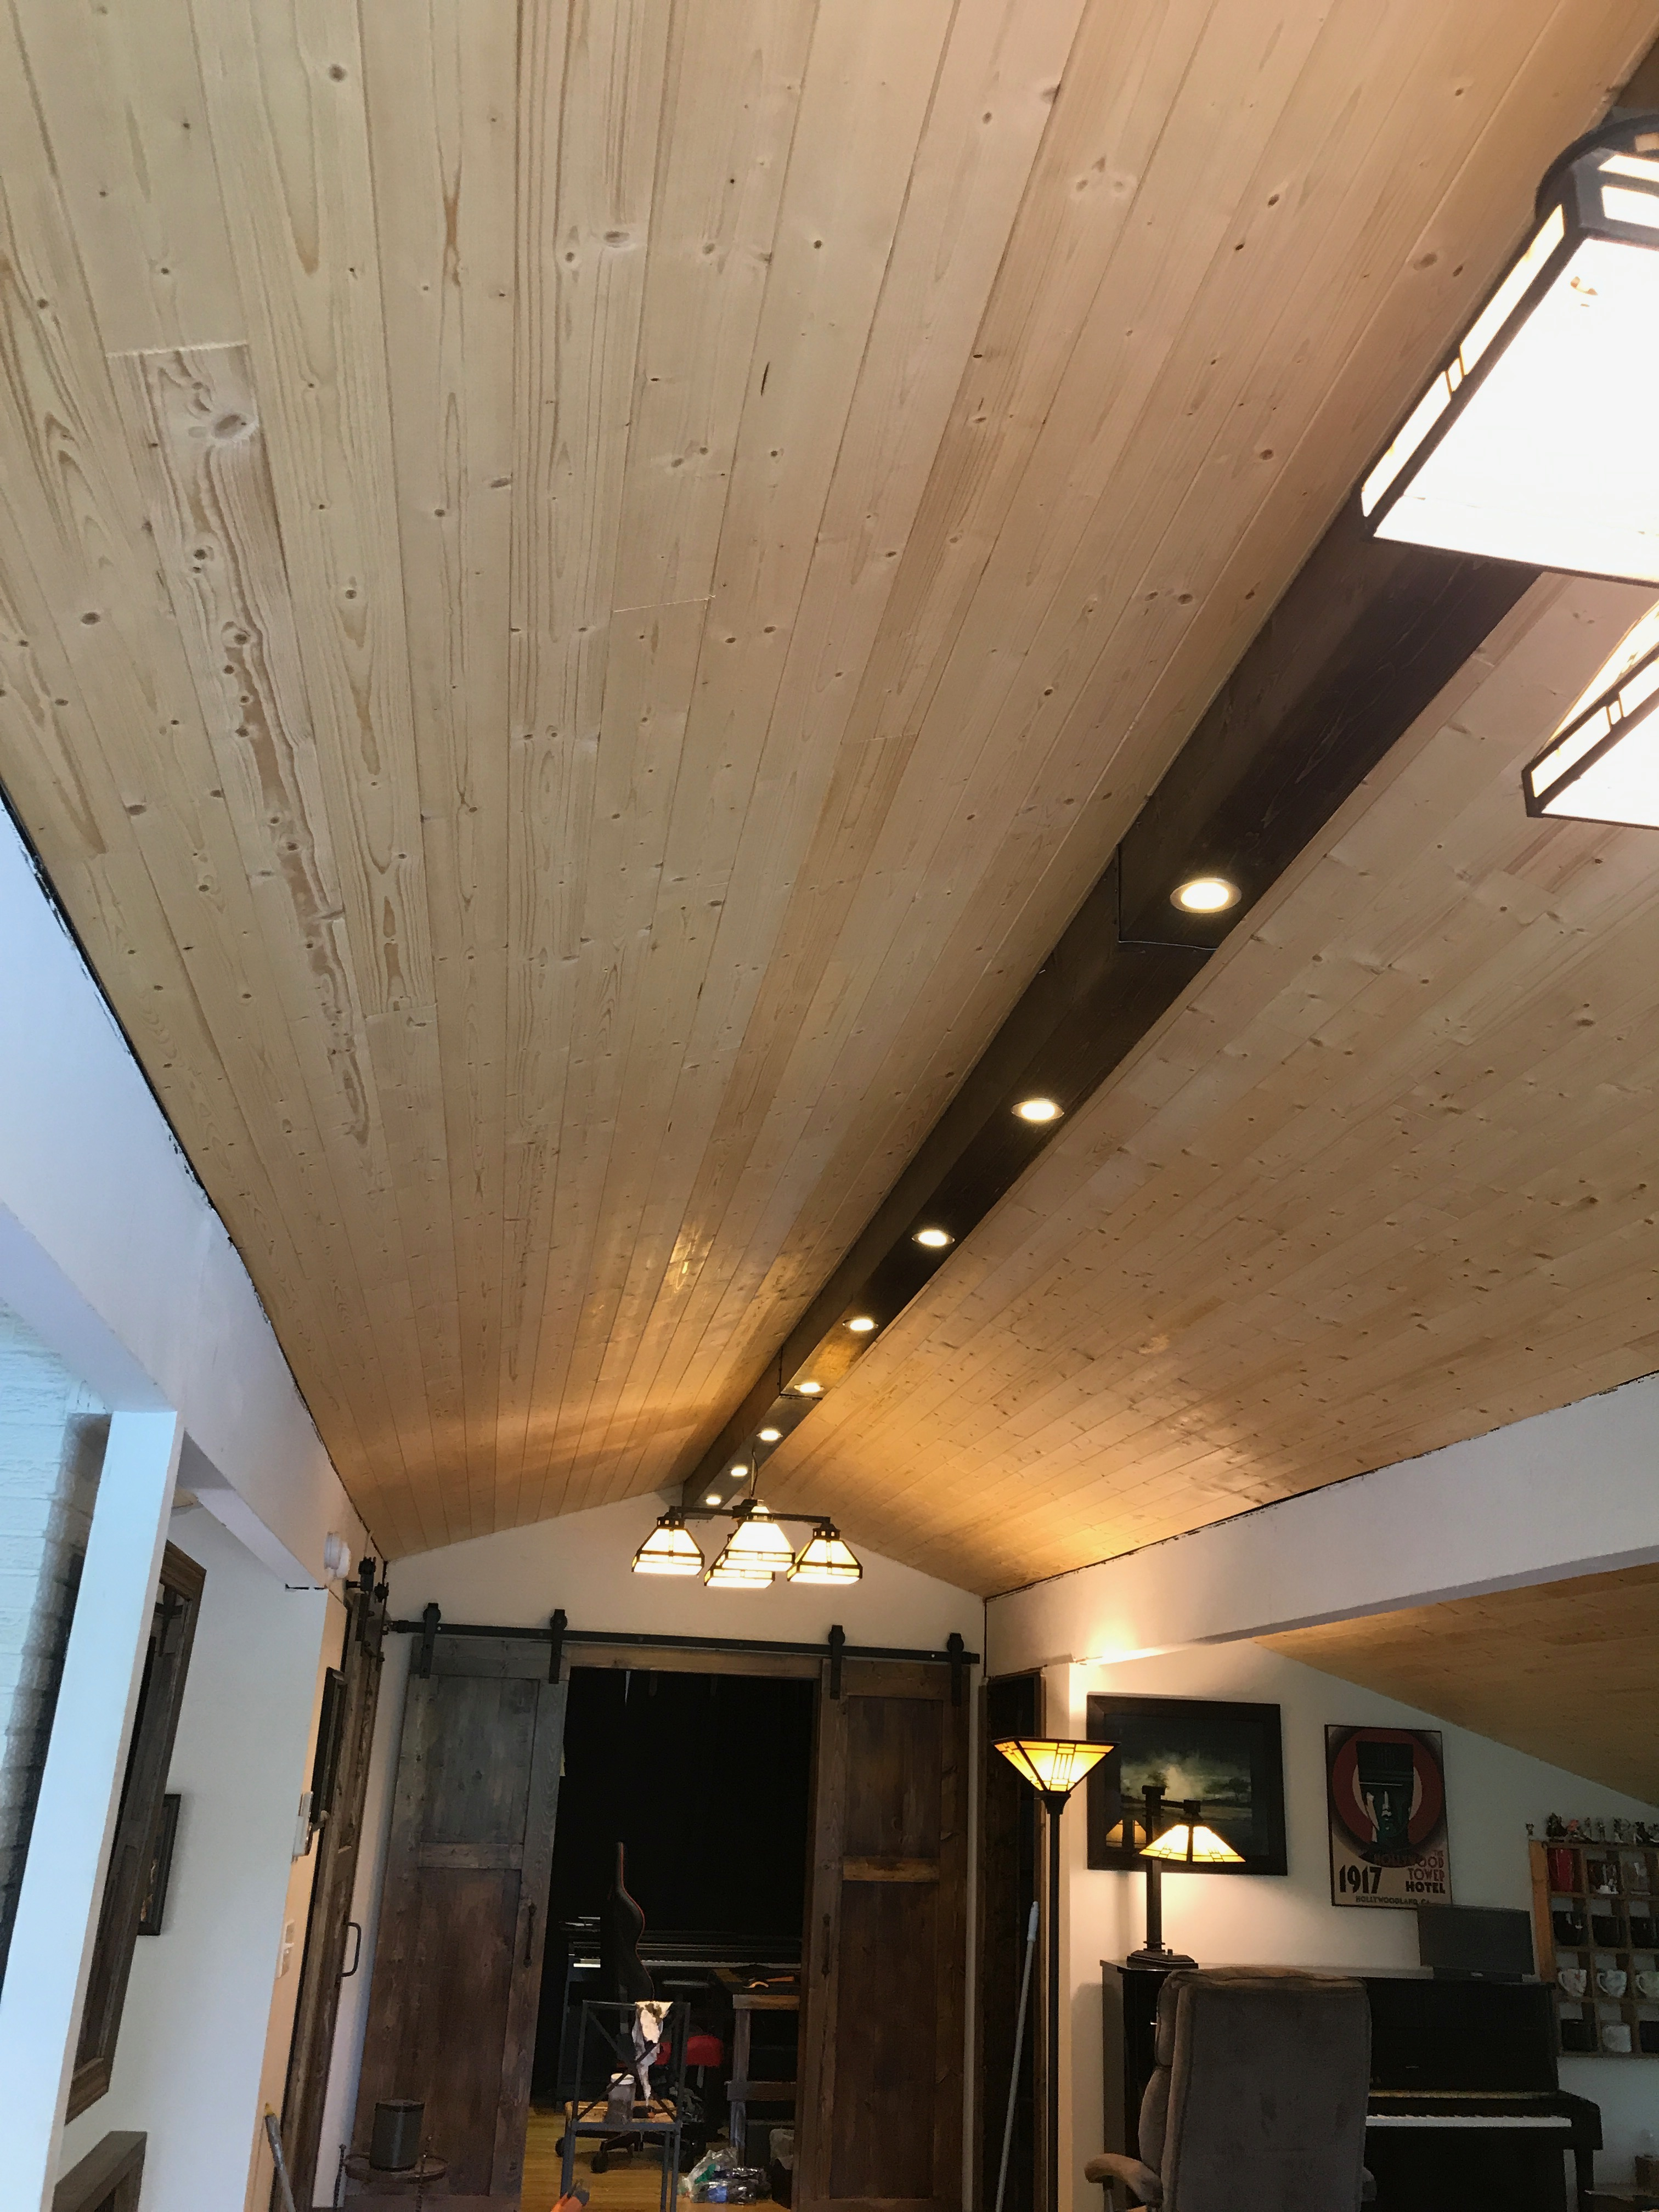 living room led lighting tall tables beam with recessed lights dave eddy to get started i installed the 2x4 stringers by securing them screws through ceiling joists wires seen will be used power itself